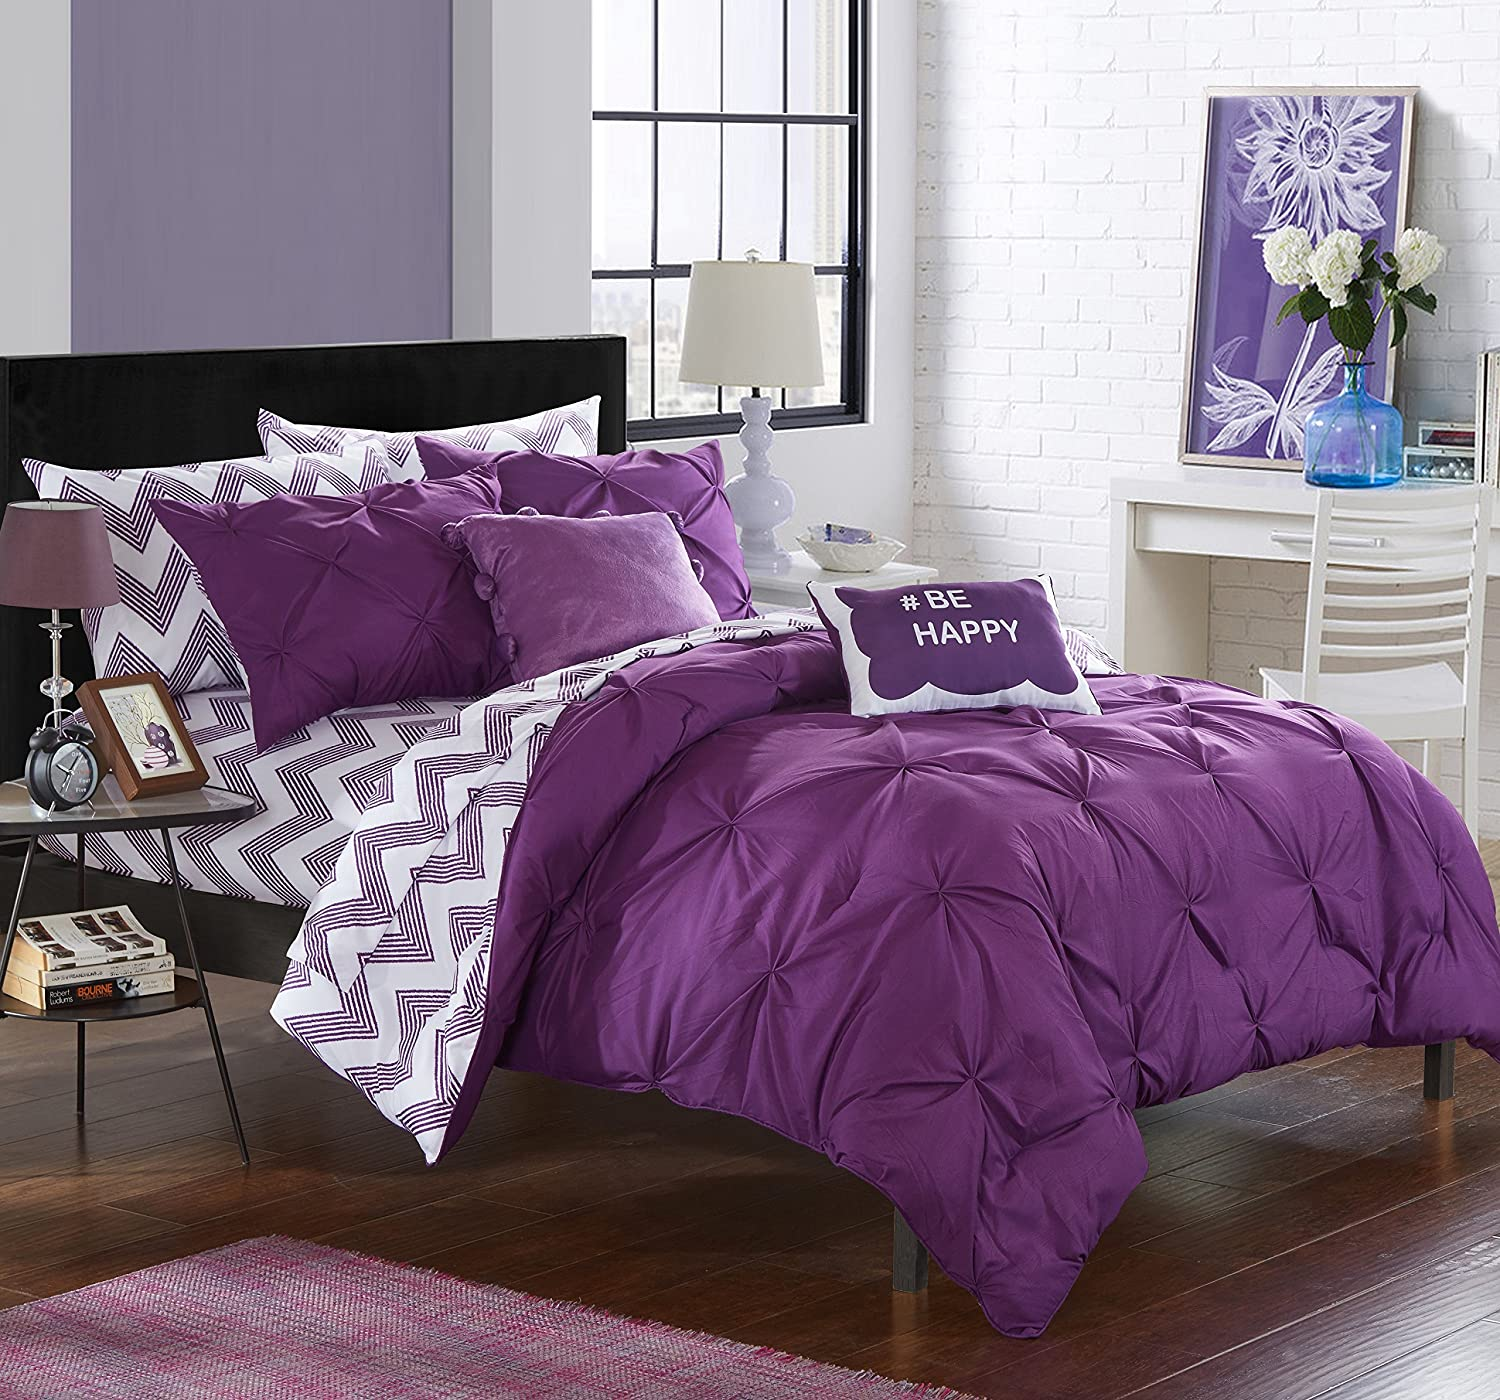 madison kitchen bedding print bed dp king piece com park amazon comforter purple lola set grey home